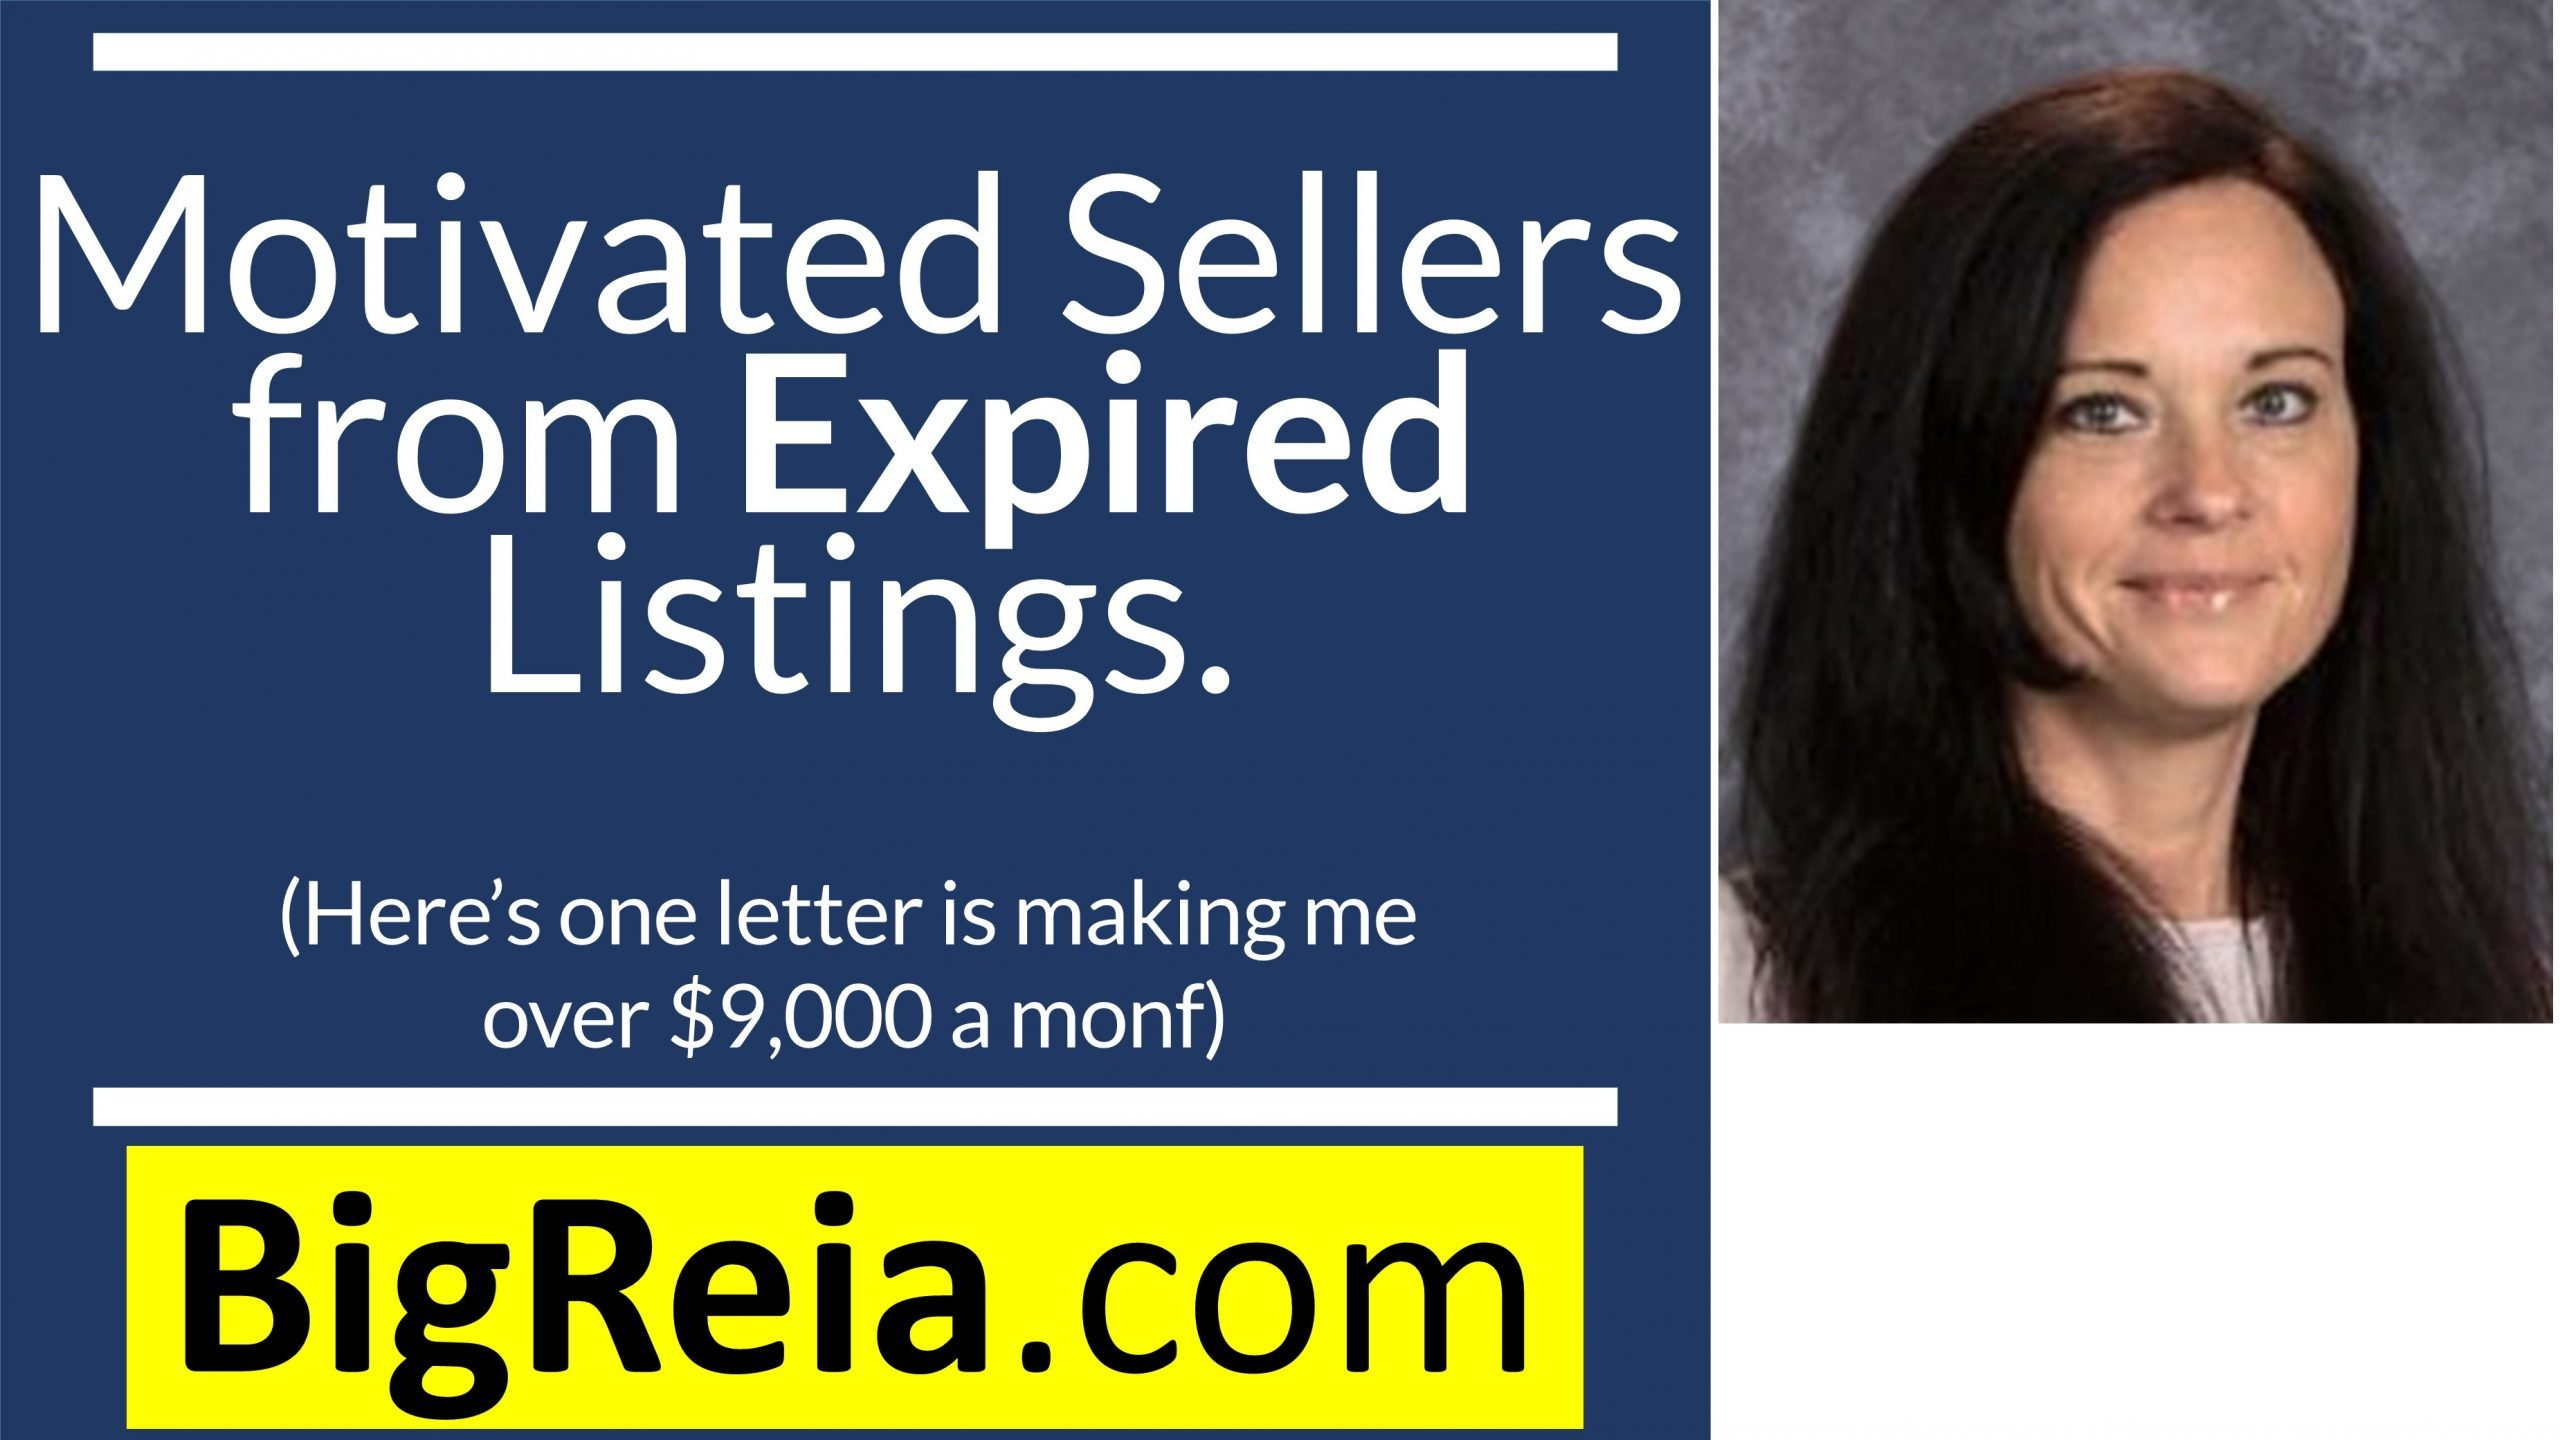 How to find FREE motivated seller leads from expired listings, this ONE letter is making 9k/month… and I'm not even mailing it LOL.